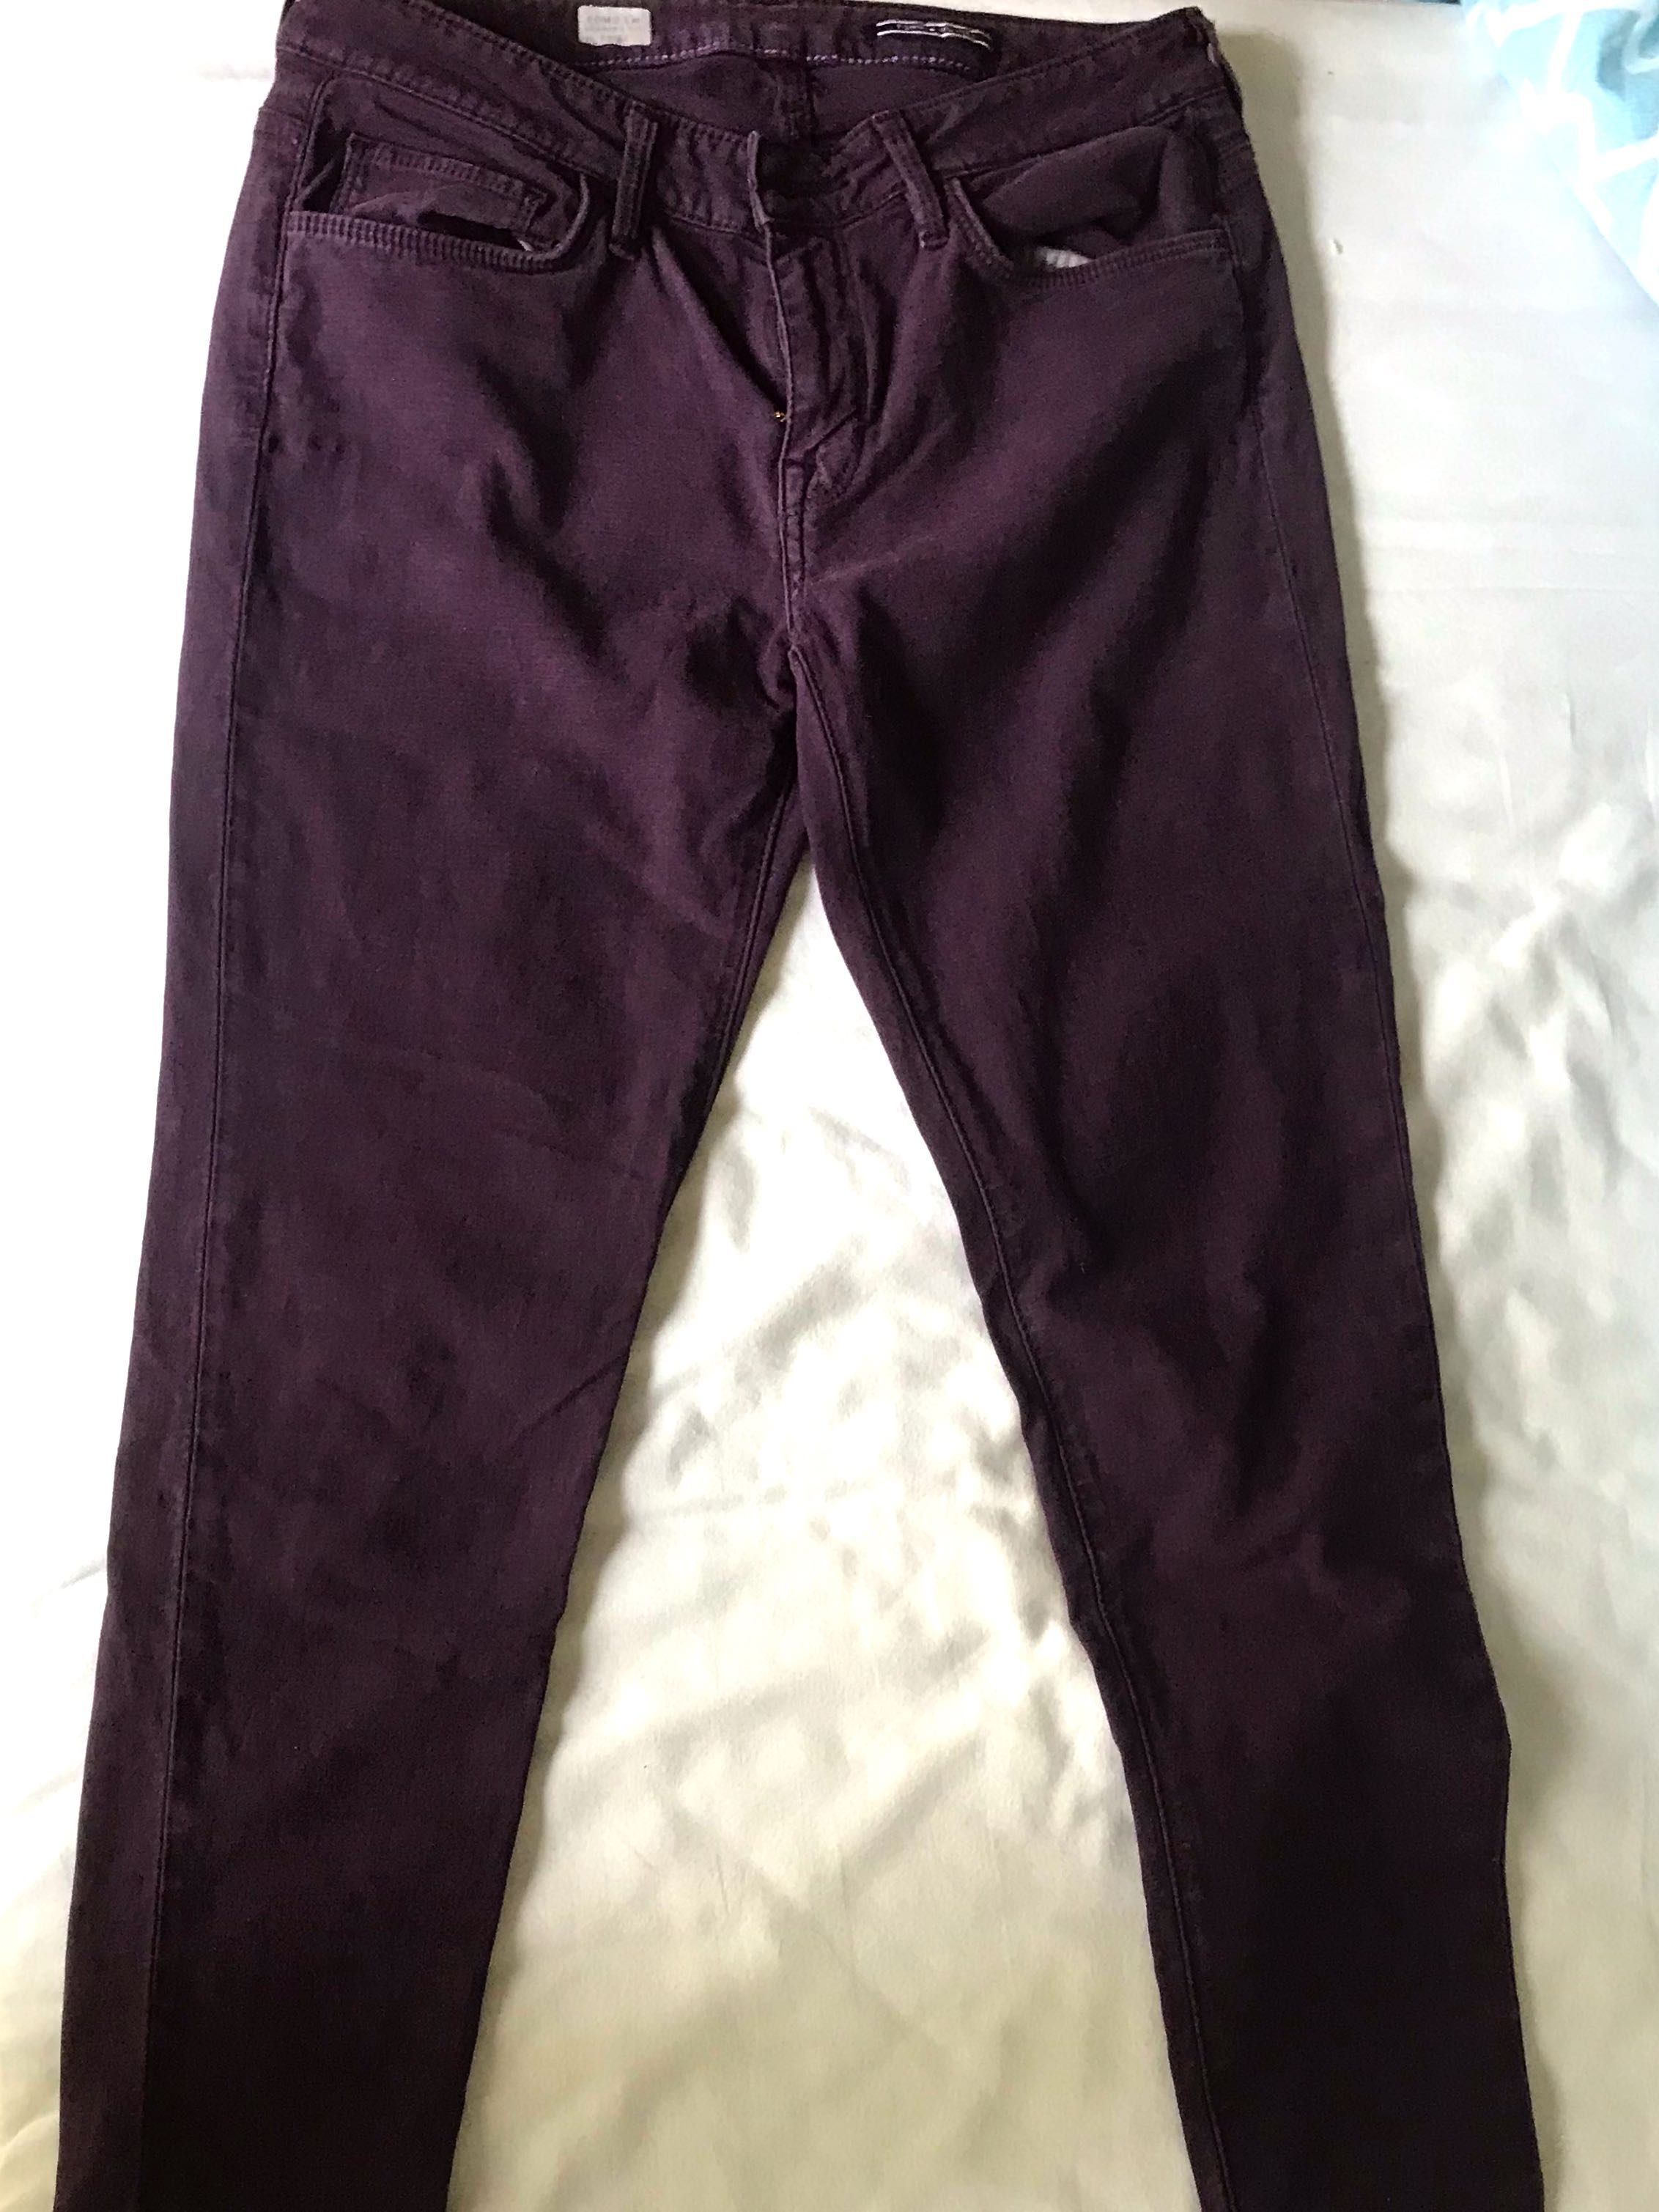 fc8aabfd4 Tommy Hilfiger Purple Jeans, Women's Fashion, Clothes, Pants, Jeans &  Shorts on Carousell